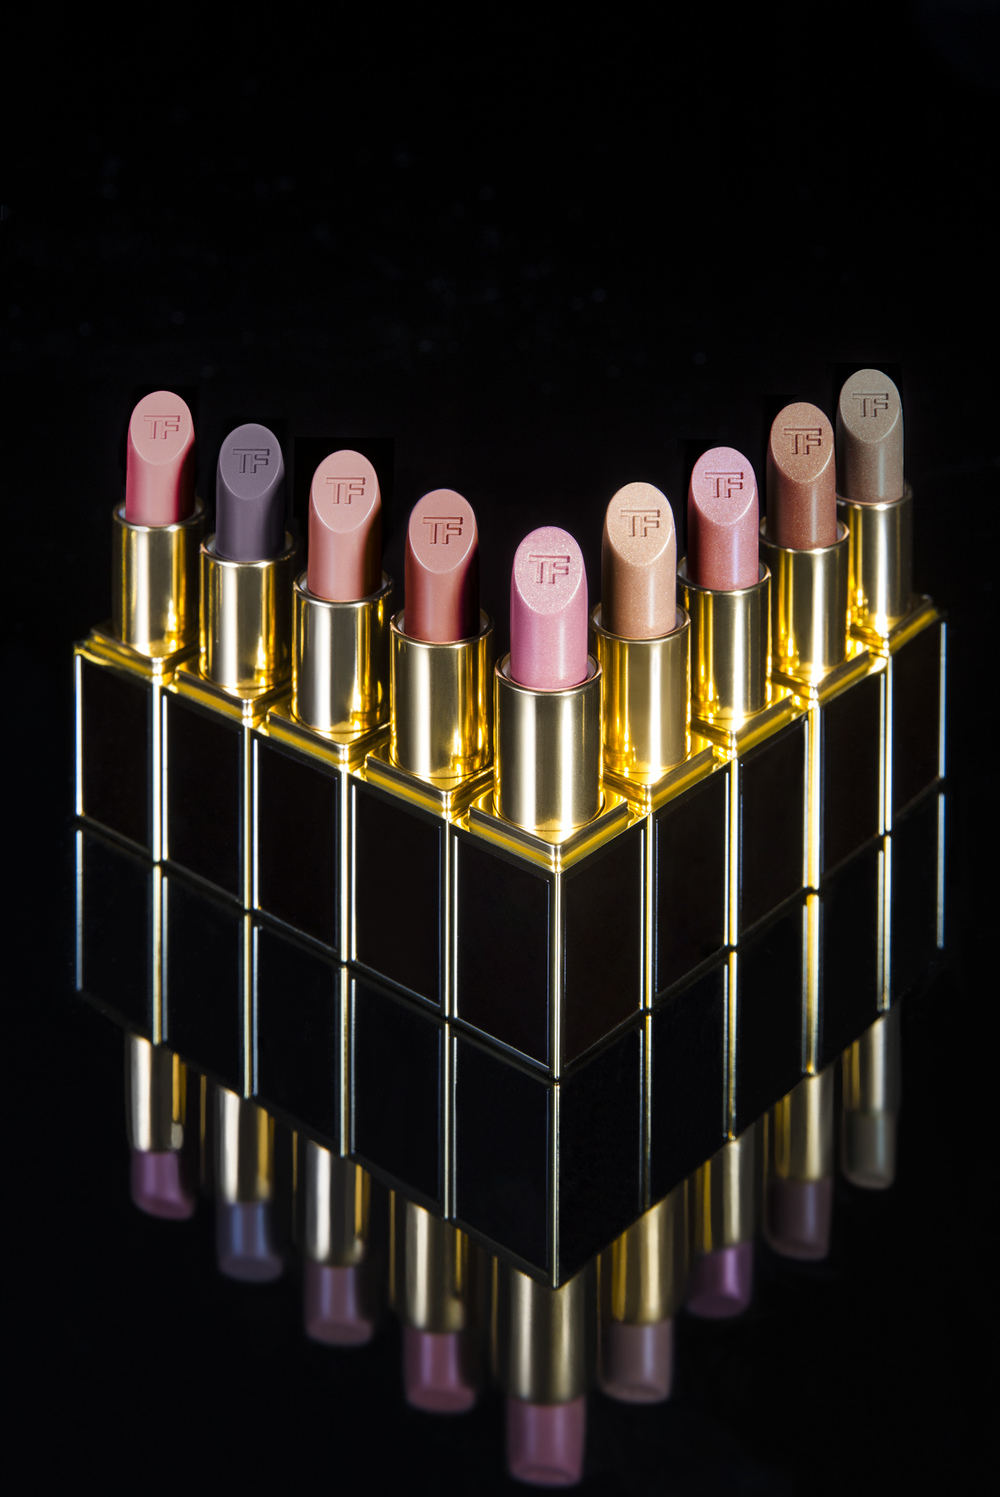 TOM FORD Lips & Boys 2015_Group Shot F.jpg